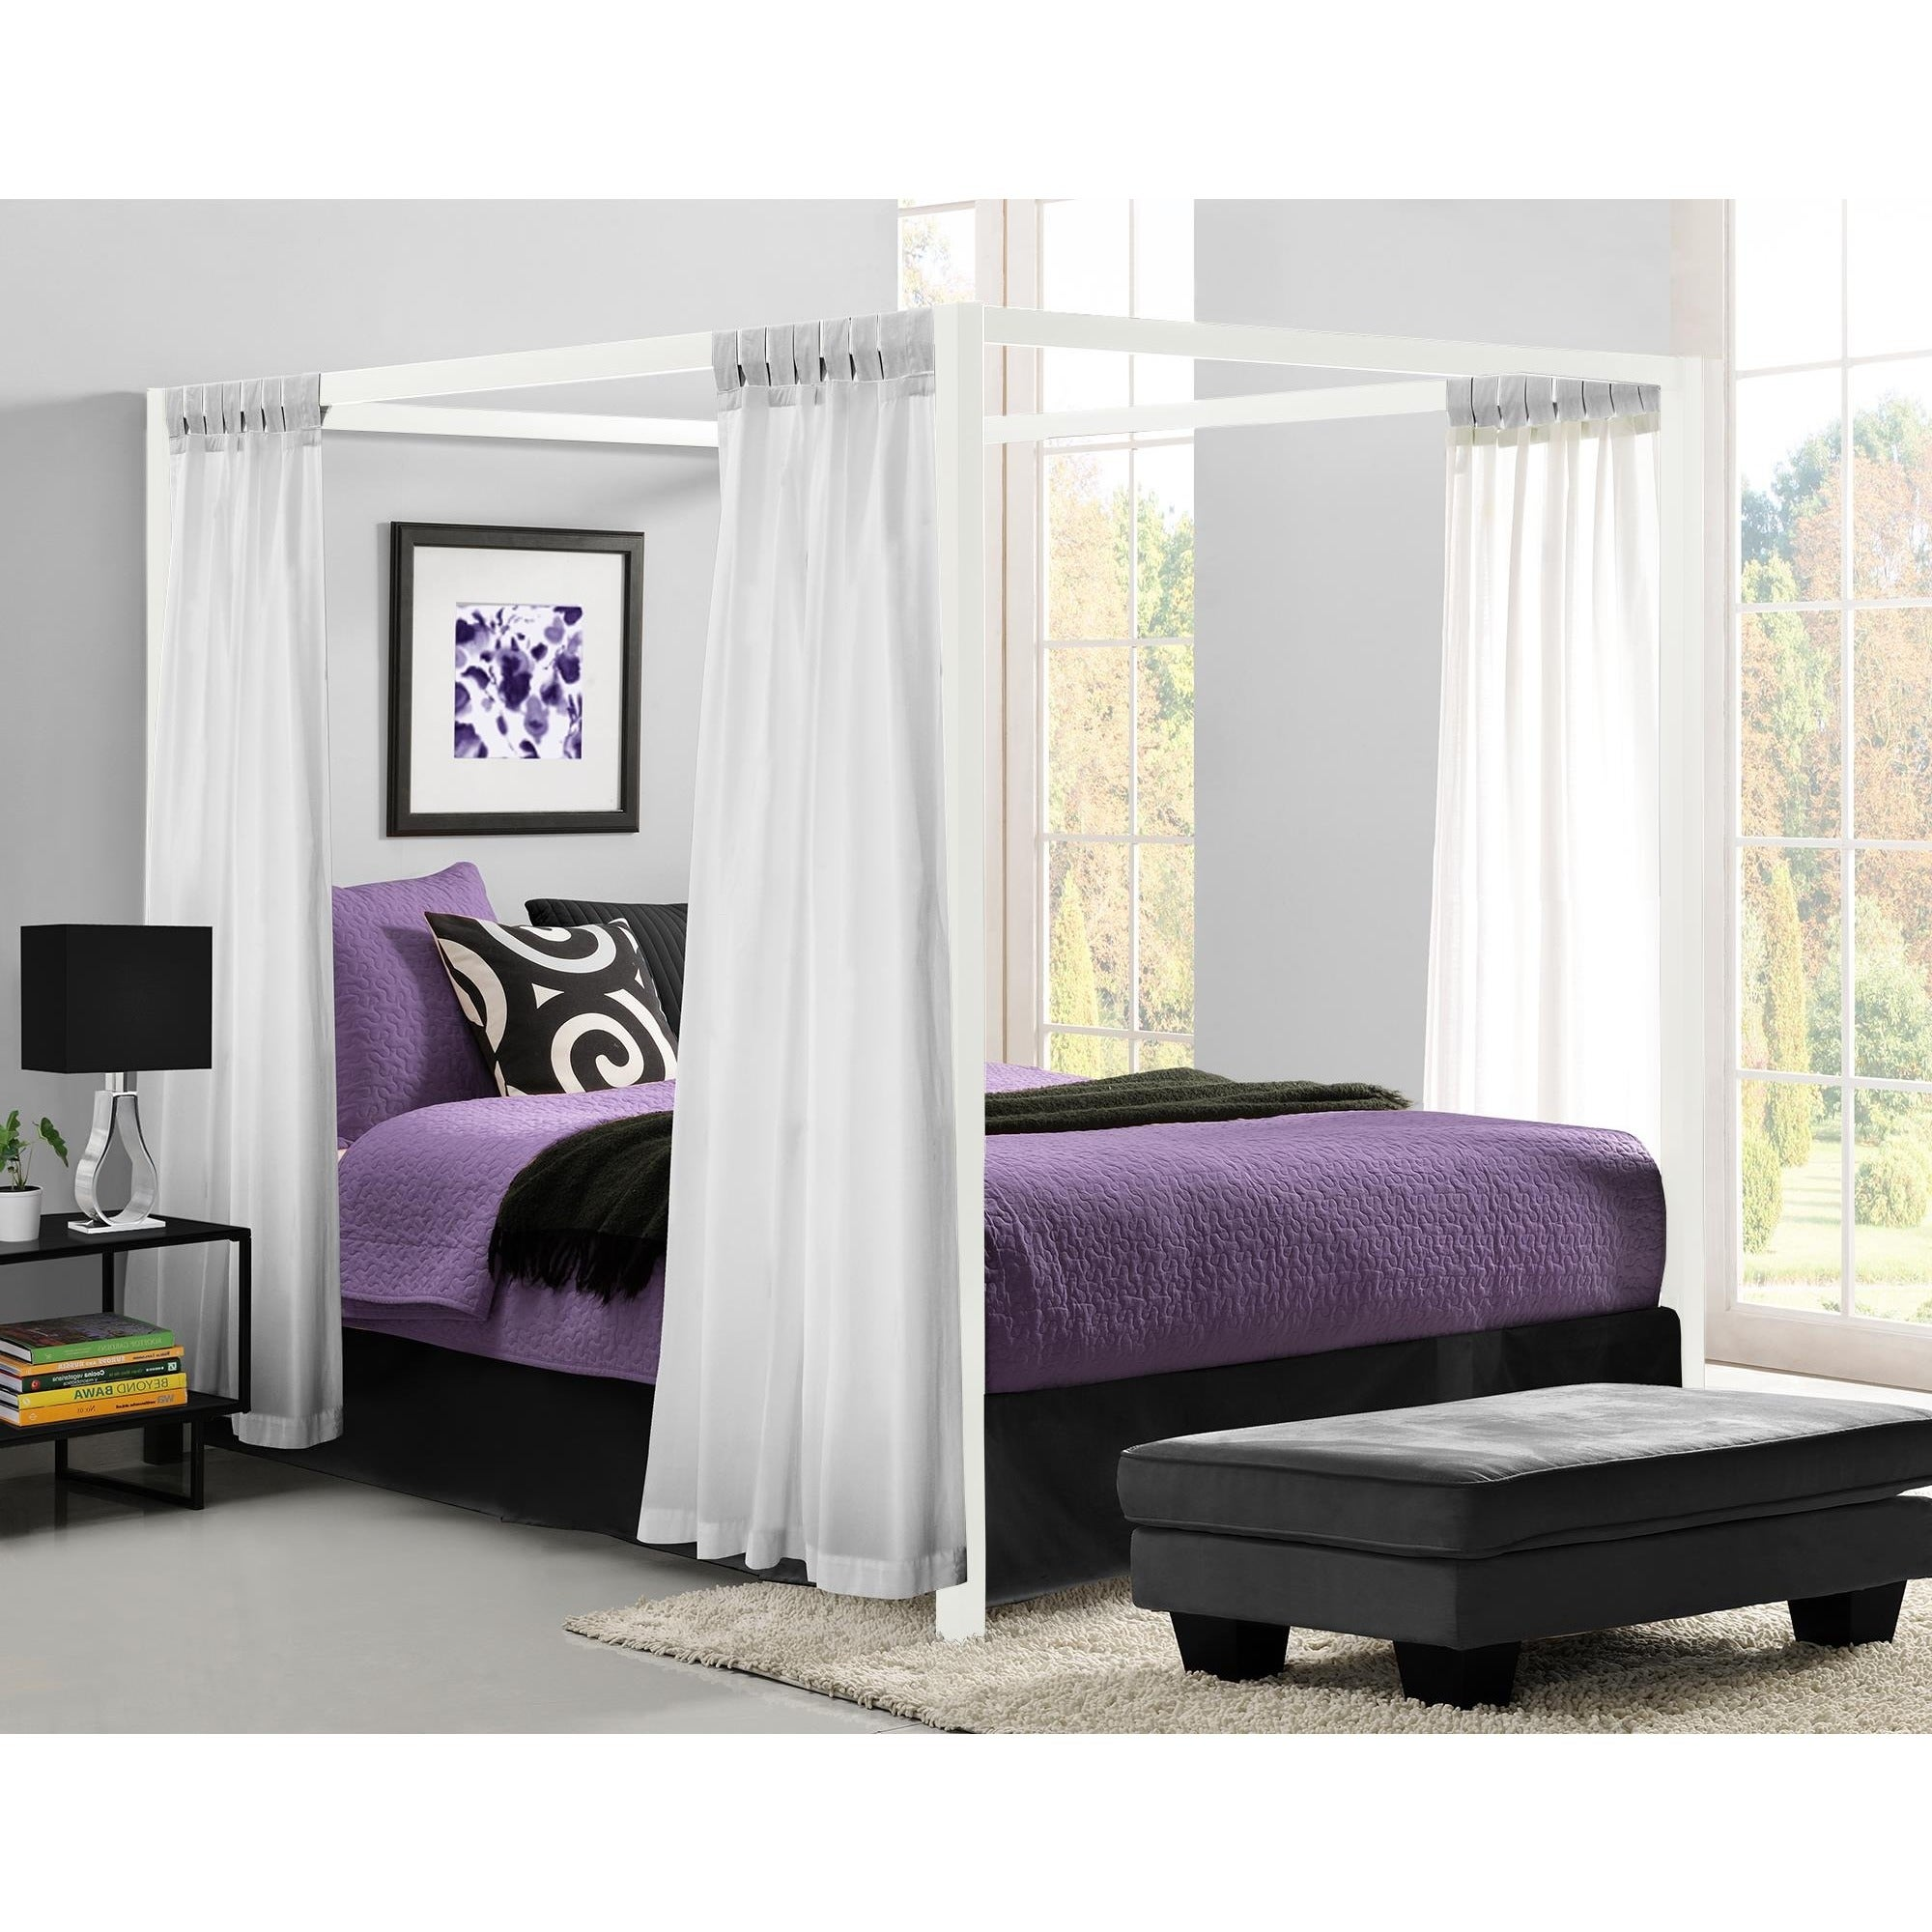 bc6bae746d52 Shop DHP Modern Canopy Queen Metal Bed - On Sale - Free Shipping Today -  Overstock - 10214076